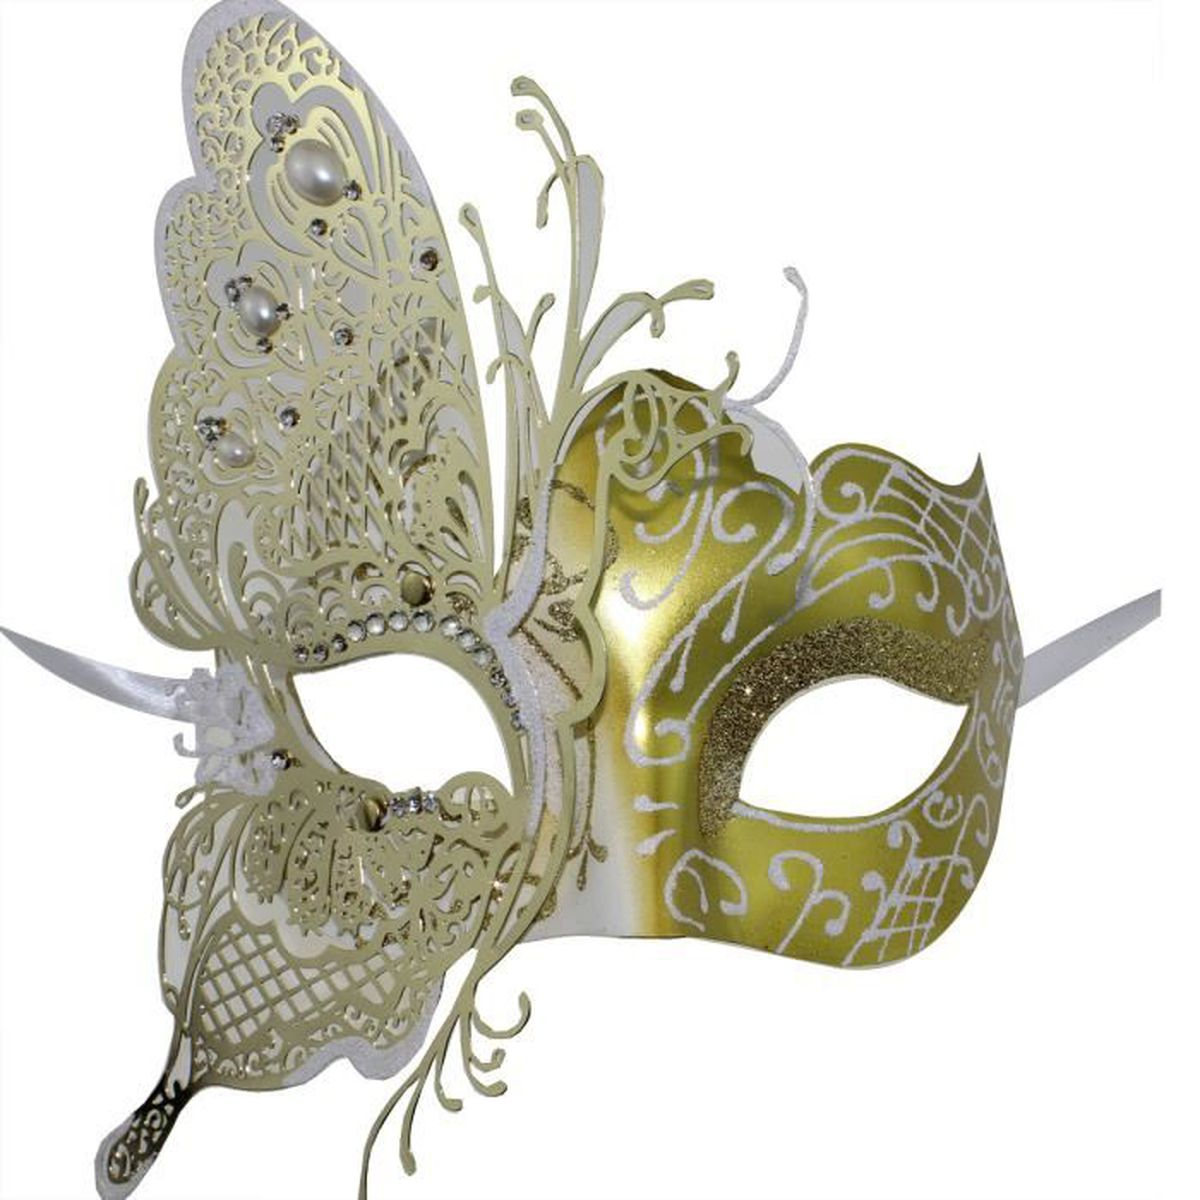 masquerade bal f te femme masque papillon masque v nitien pour les femmes blanc or achat. Black Bedroom Furniture Sets. Home Design Ideas